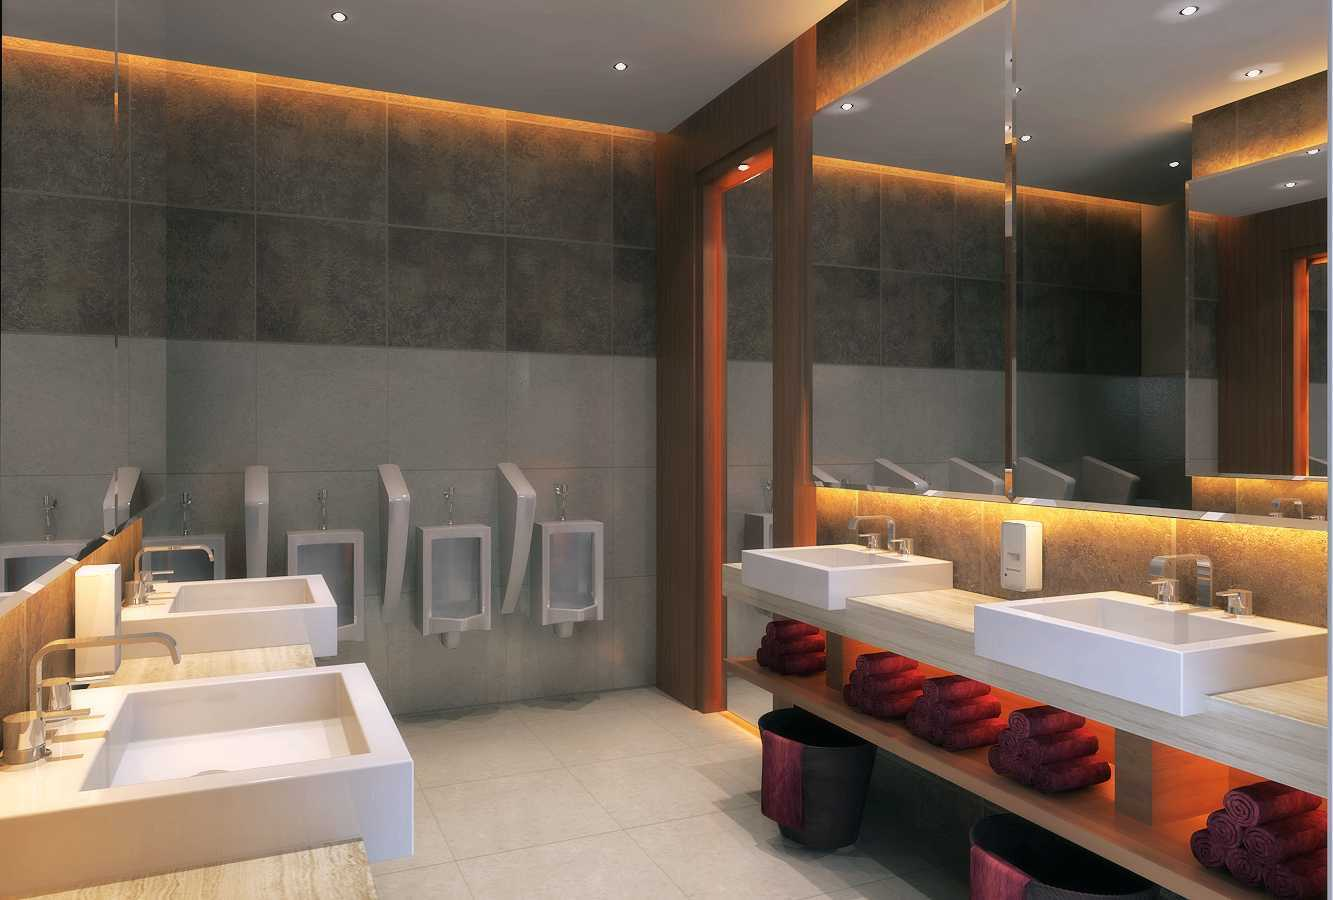 Rinto Katili Public Toilet Sunset Hotel Bali  Bali, Indonesia Bali, Indonesia Toilet Pria Ground Floor  40344